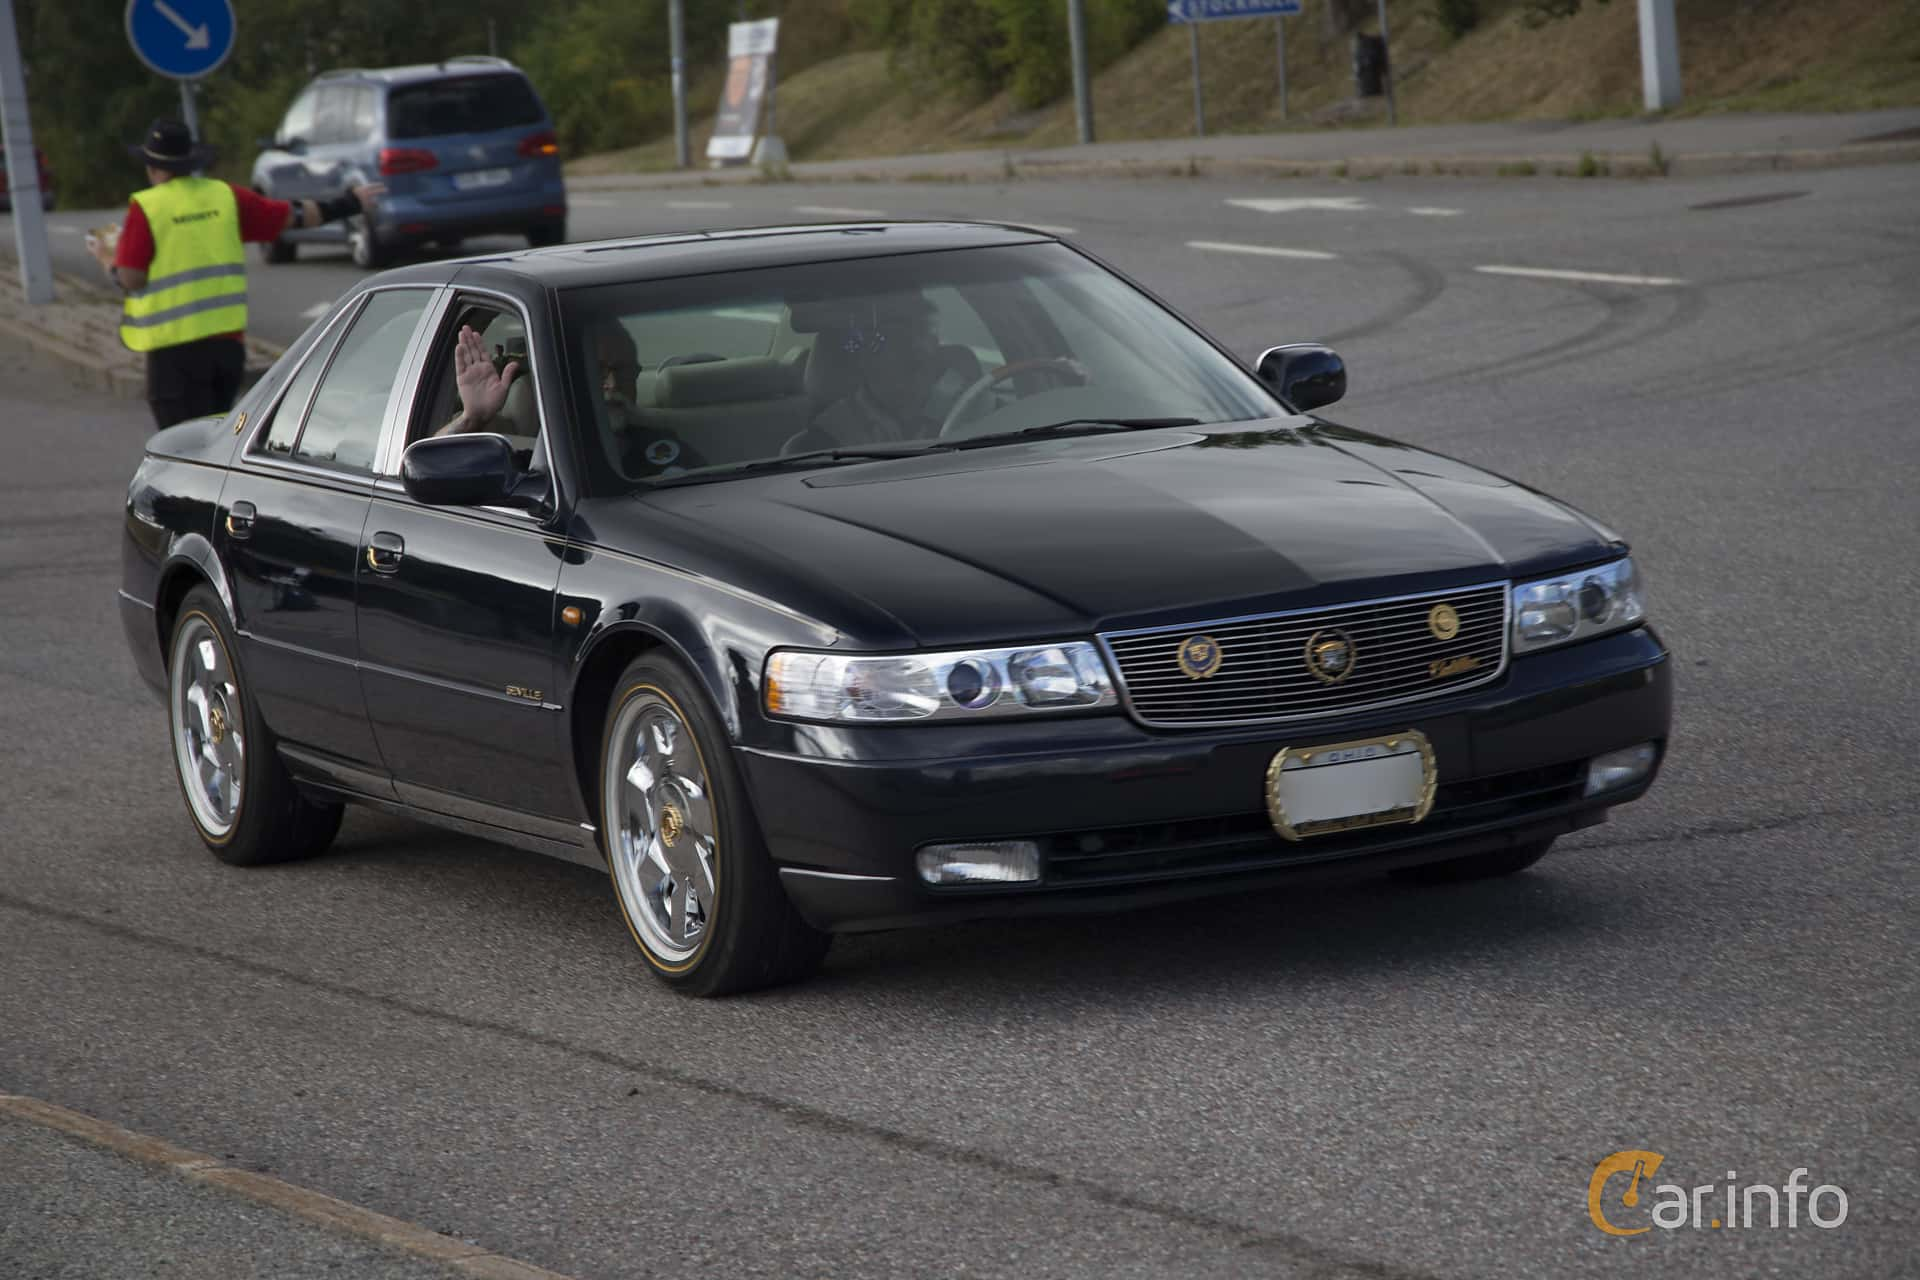 1 Images Of Cadillac Seville Sts 4 6 V8 Automatic 305hp 1999 By Pelle